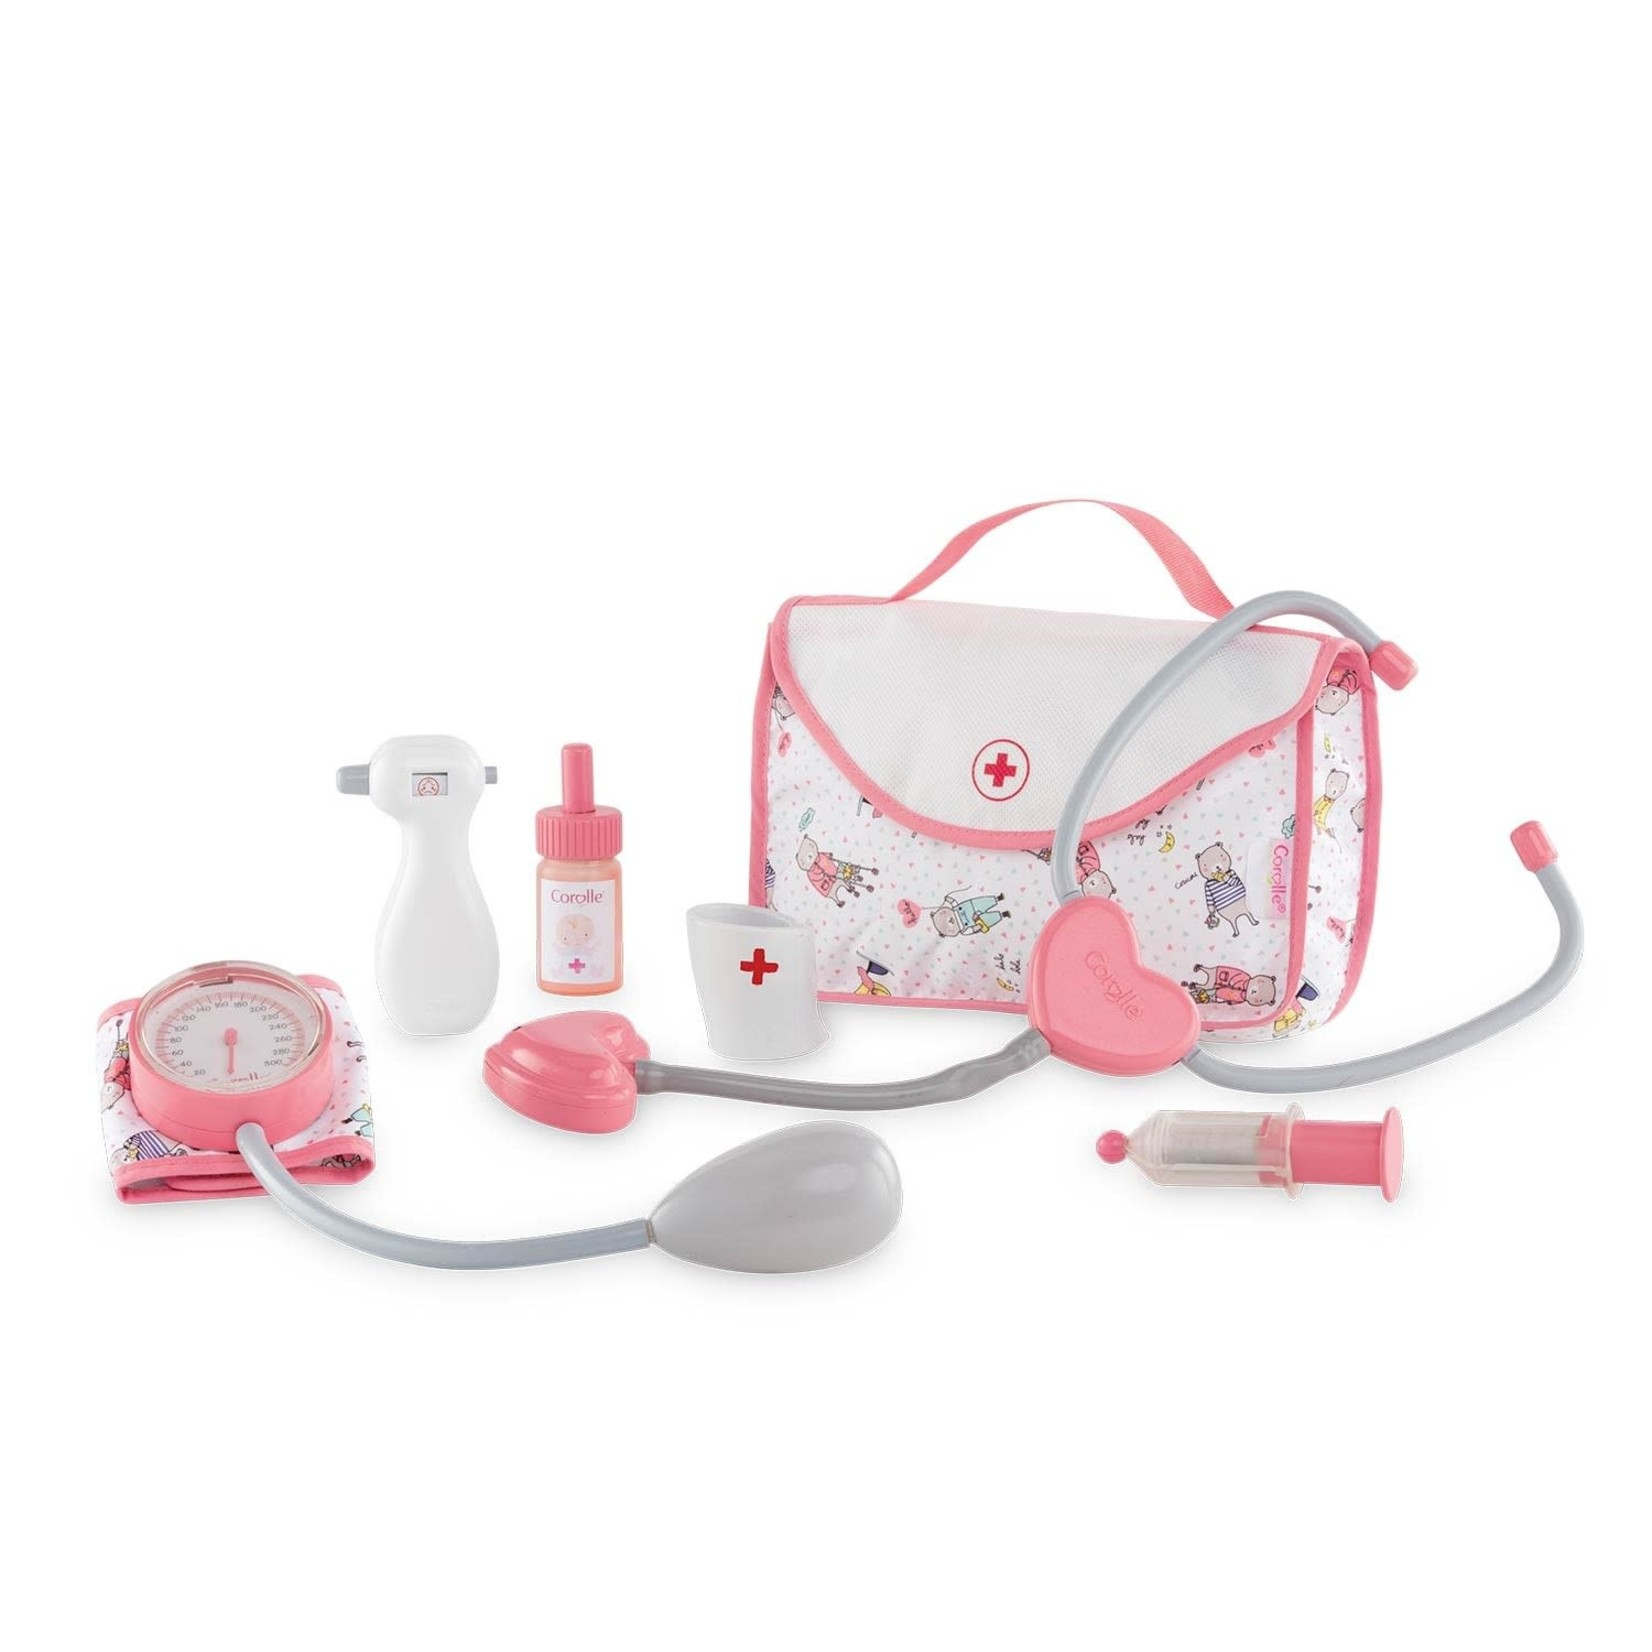 COROLLE LARGE DOCTOR SET